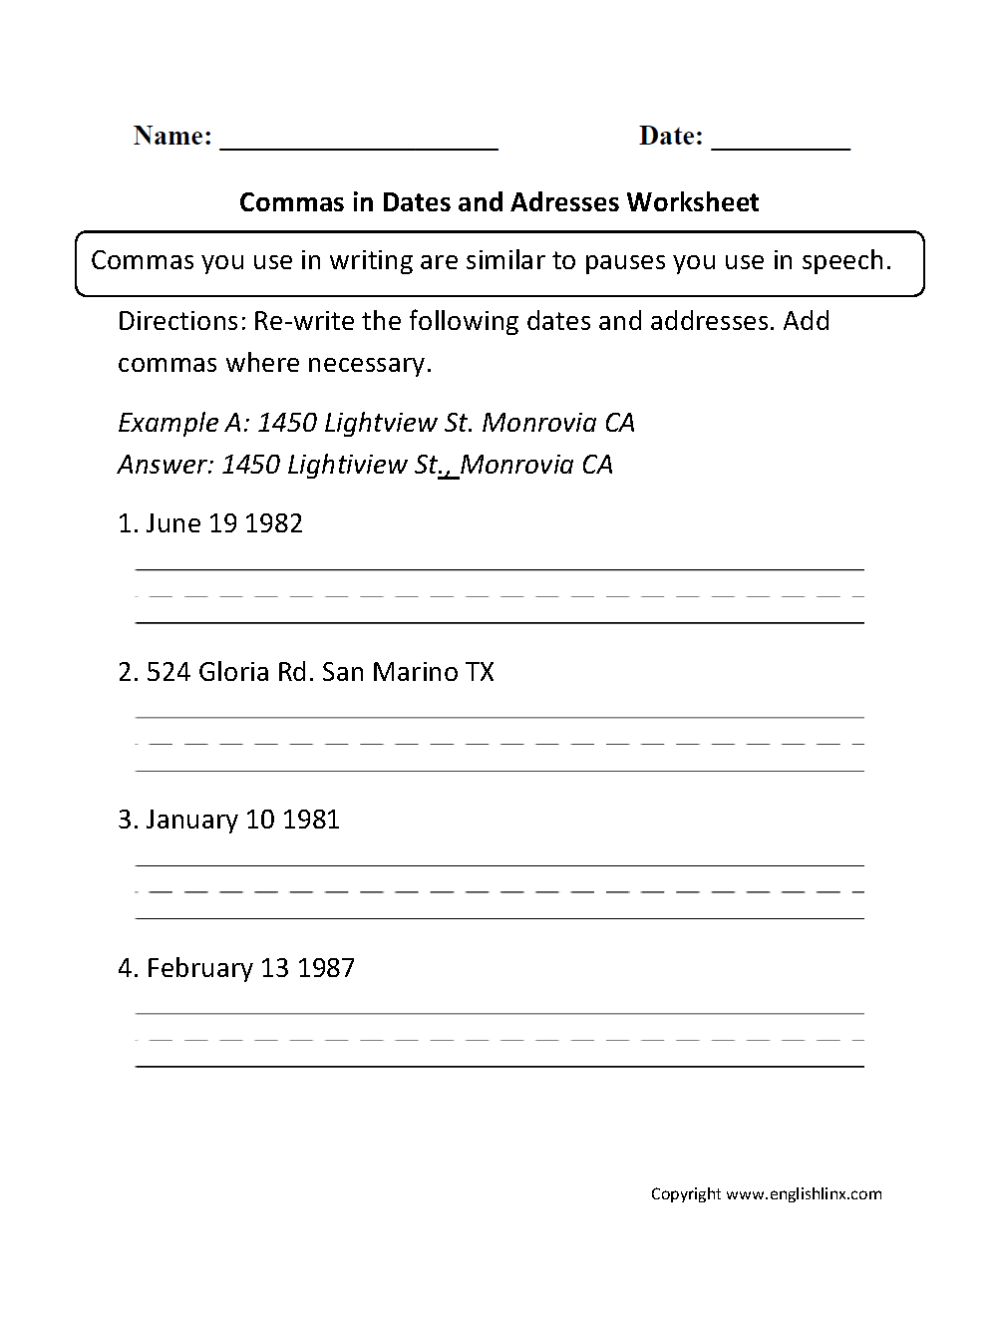 medium resolution of Commas Worksheets   Commas in Dates and Addresses Worksheet